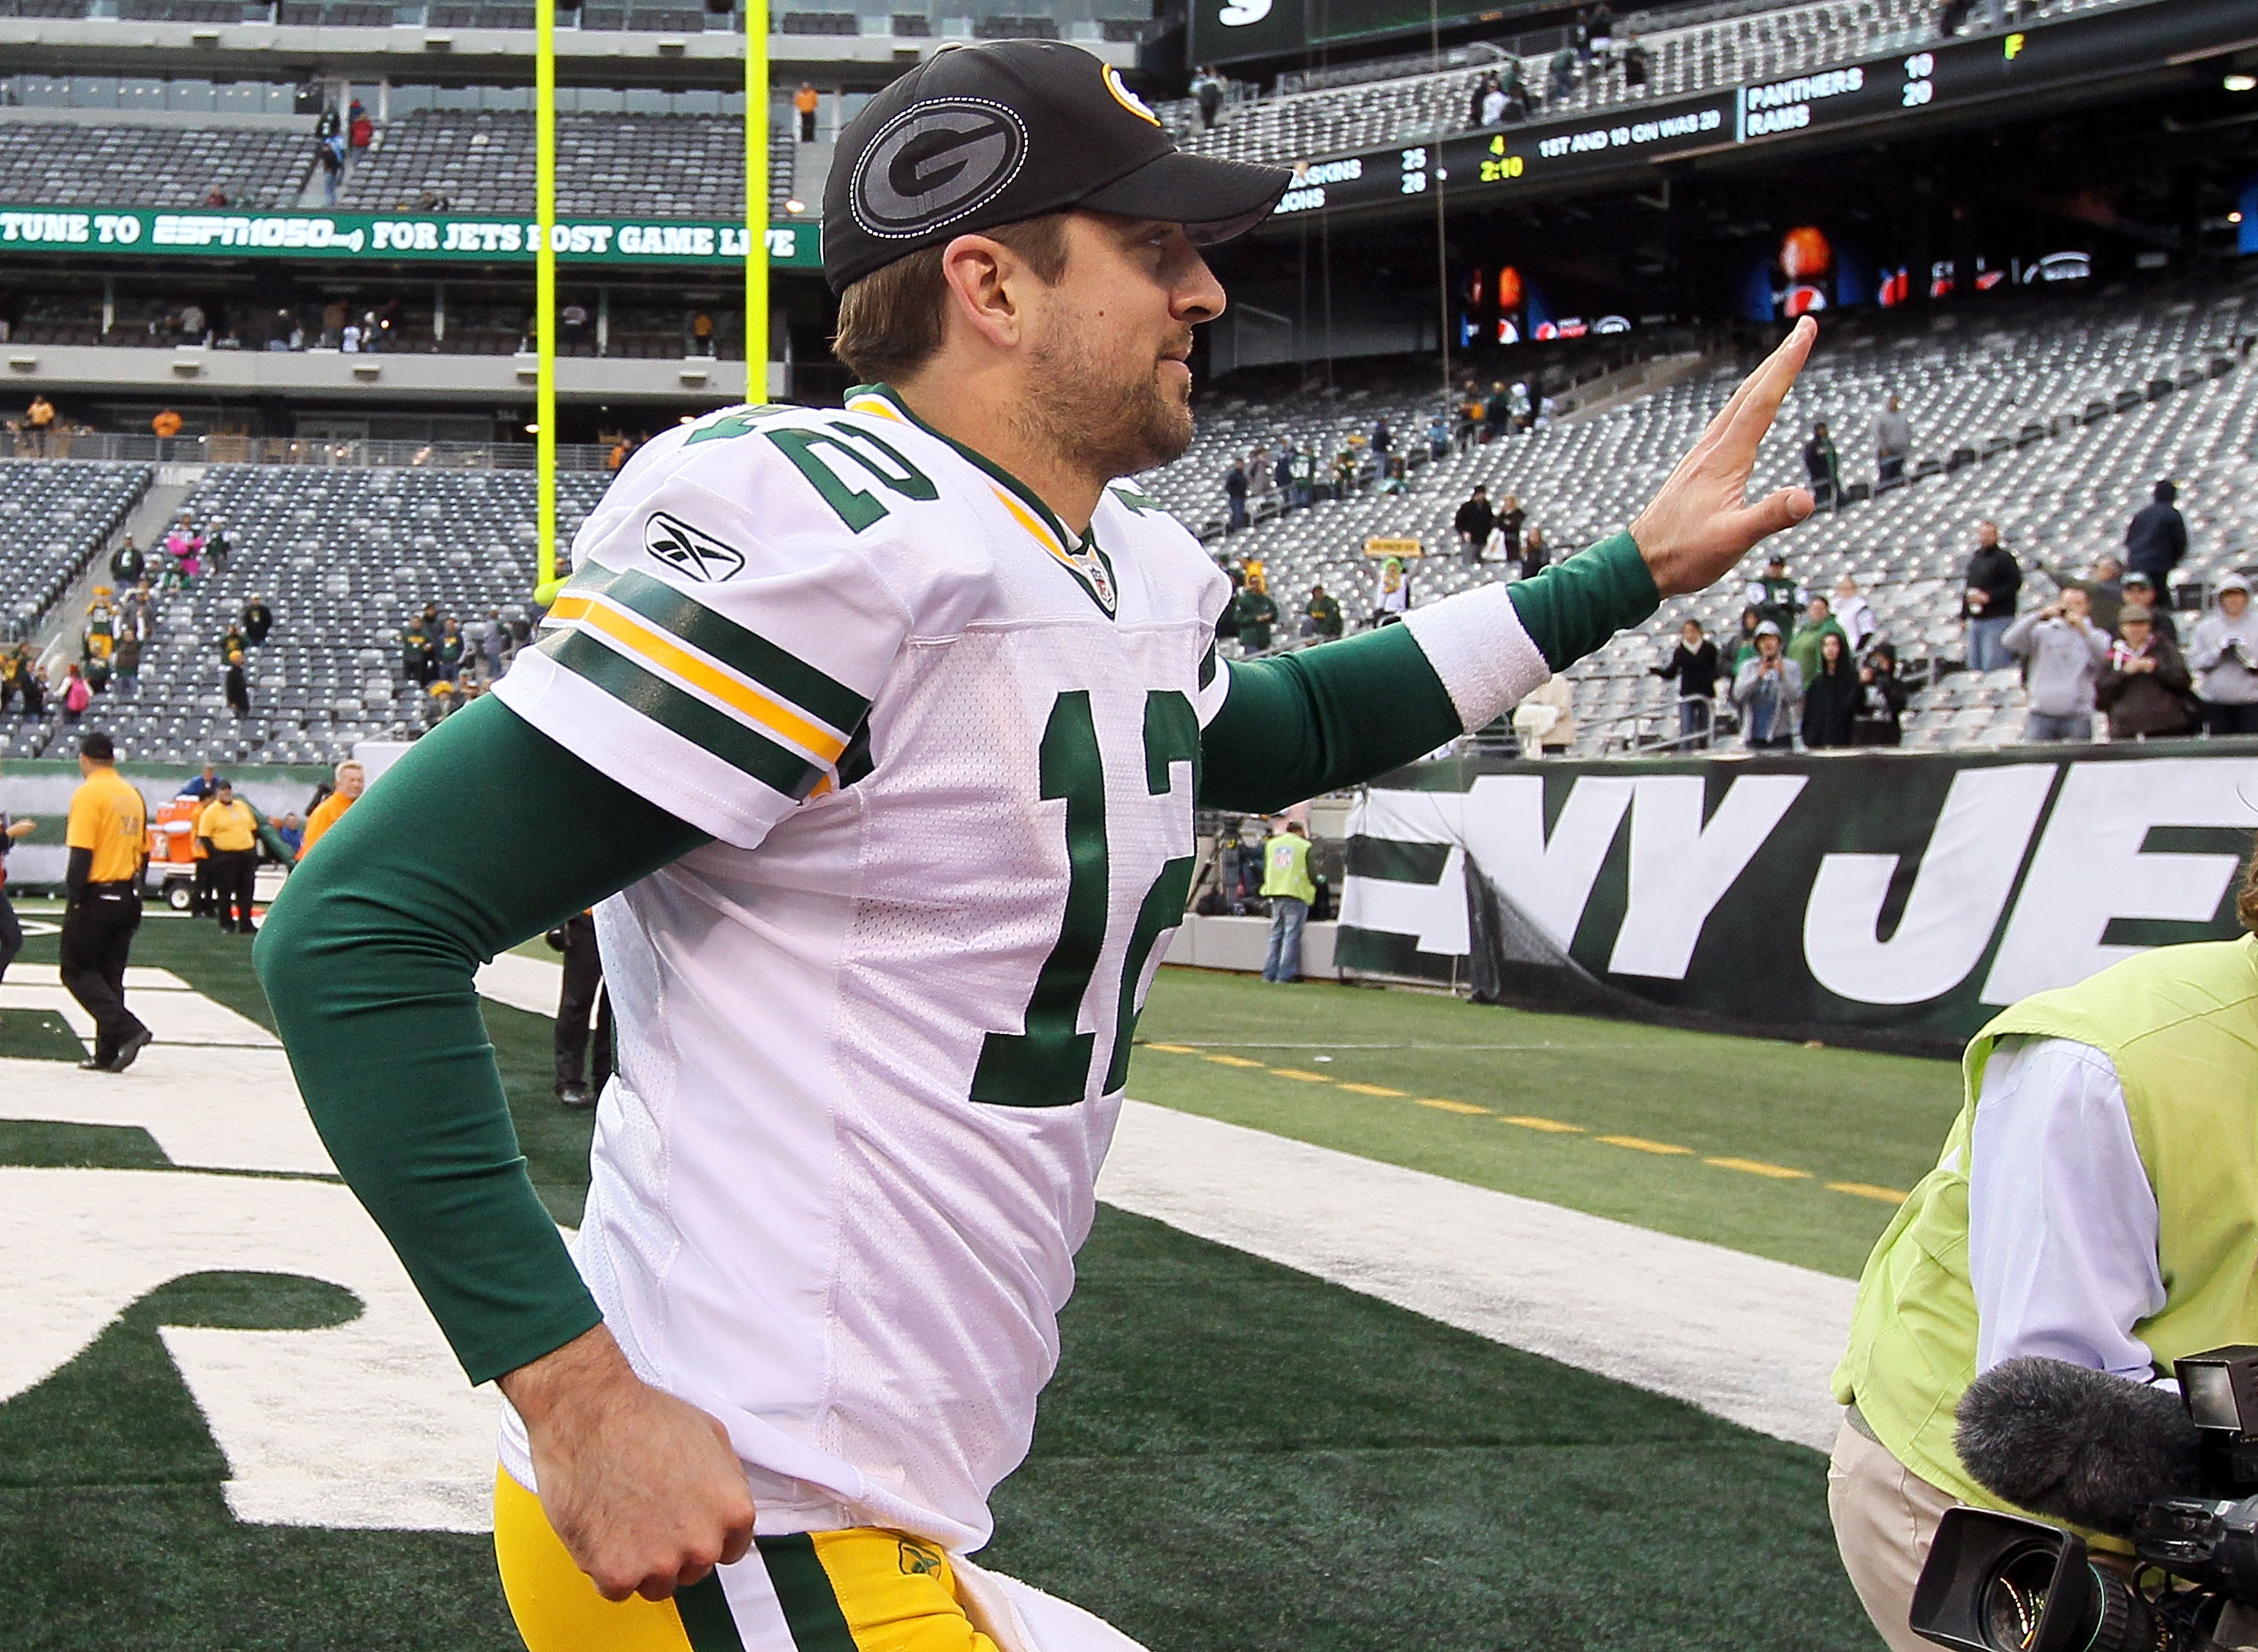 Rodgers can say hello to super stardom.